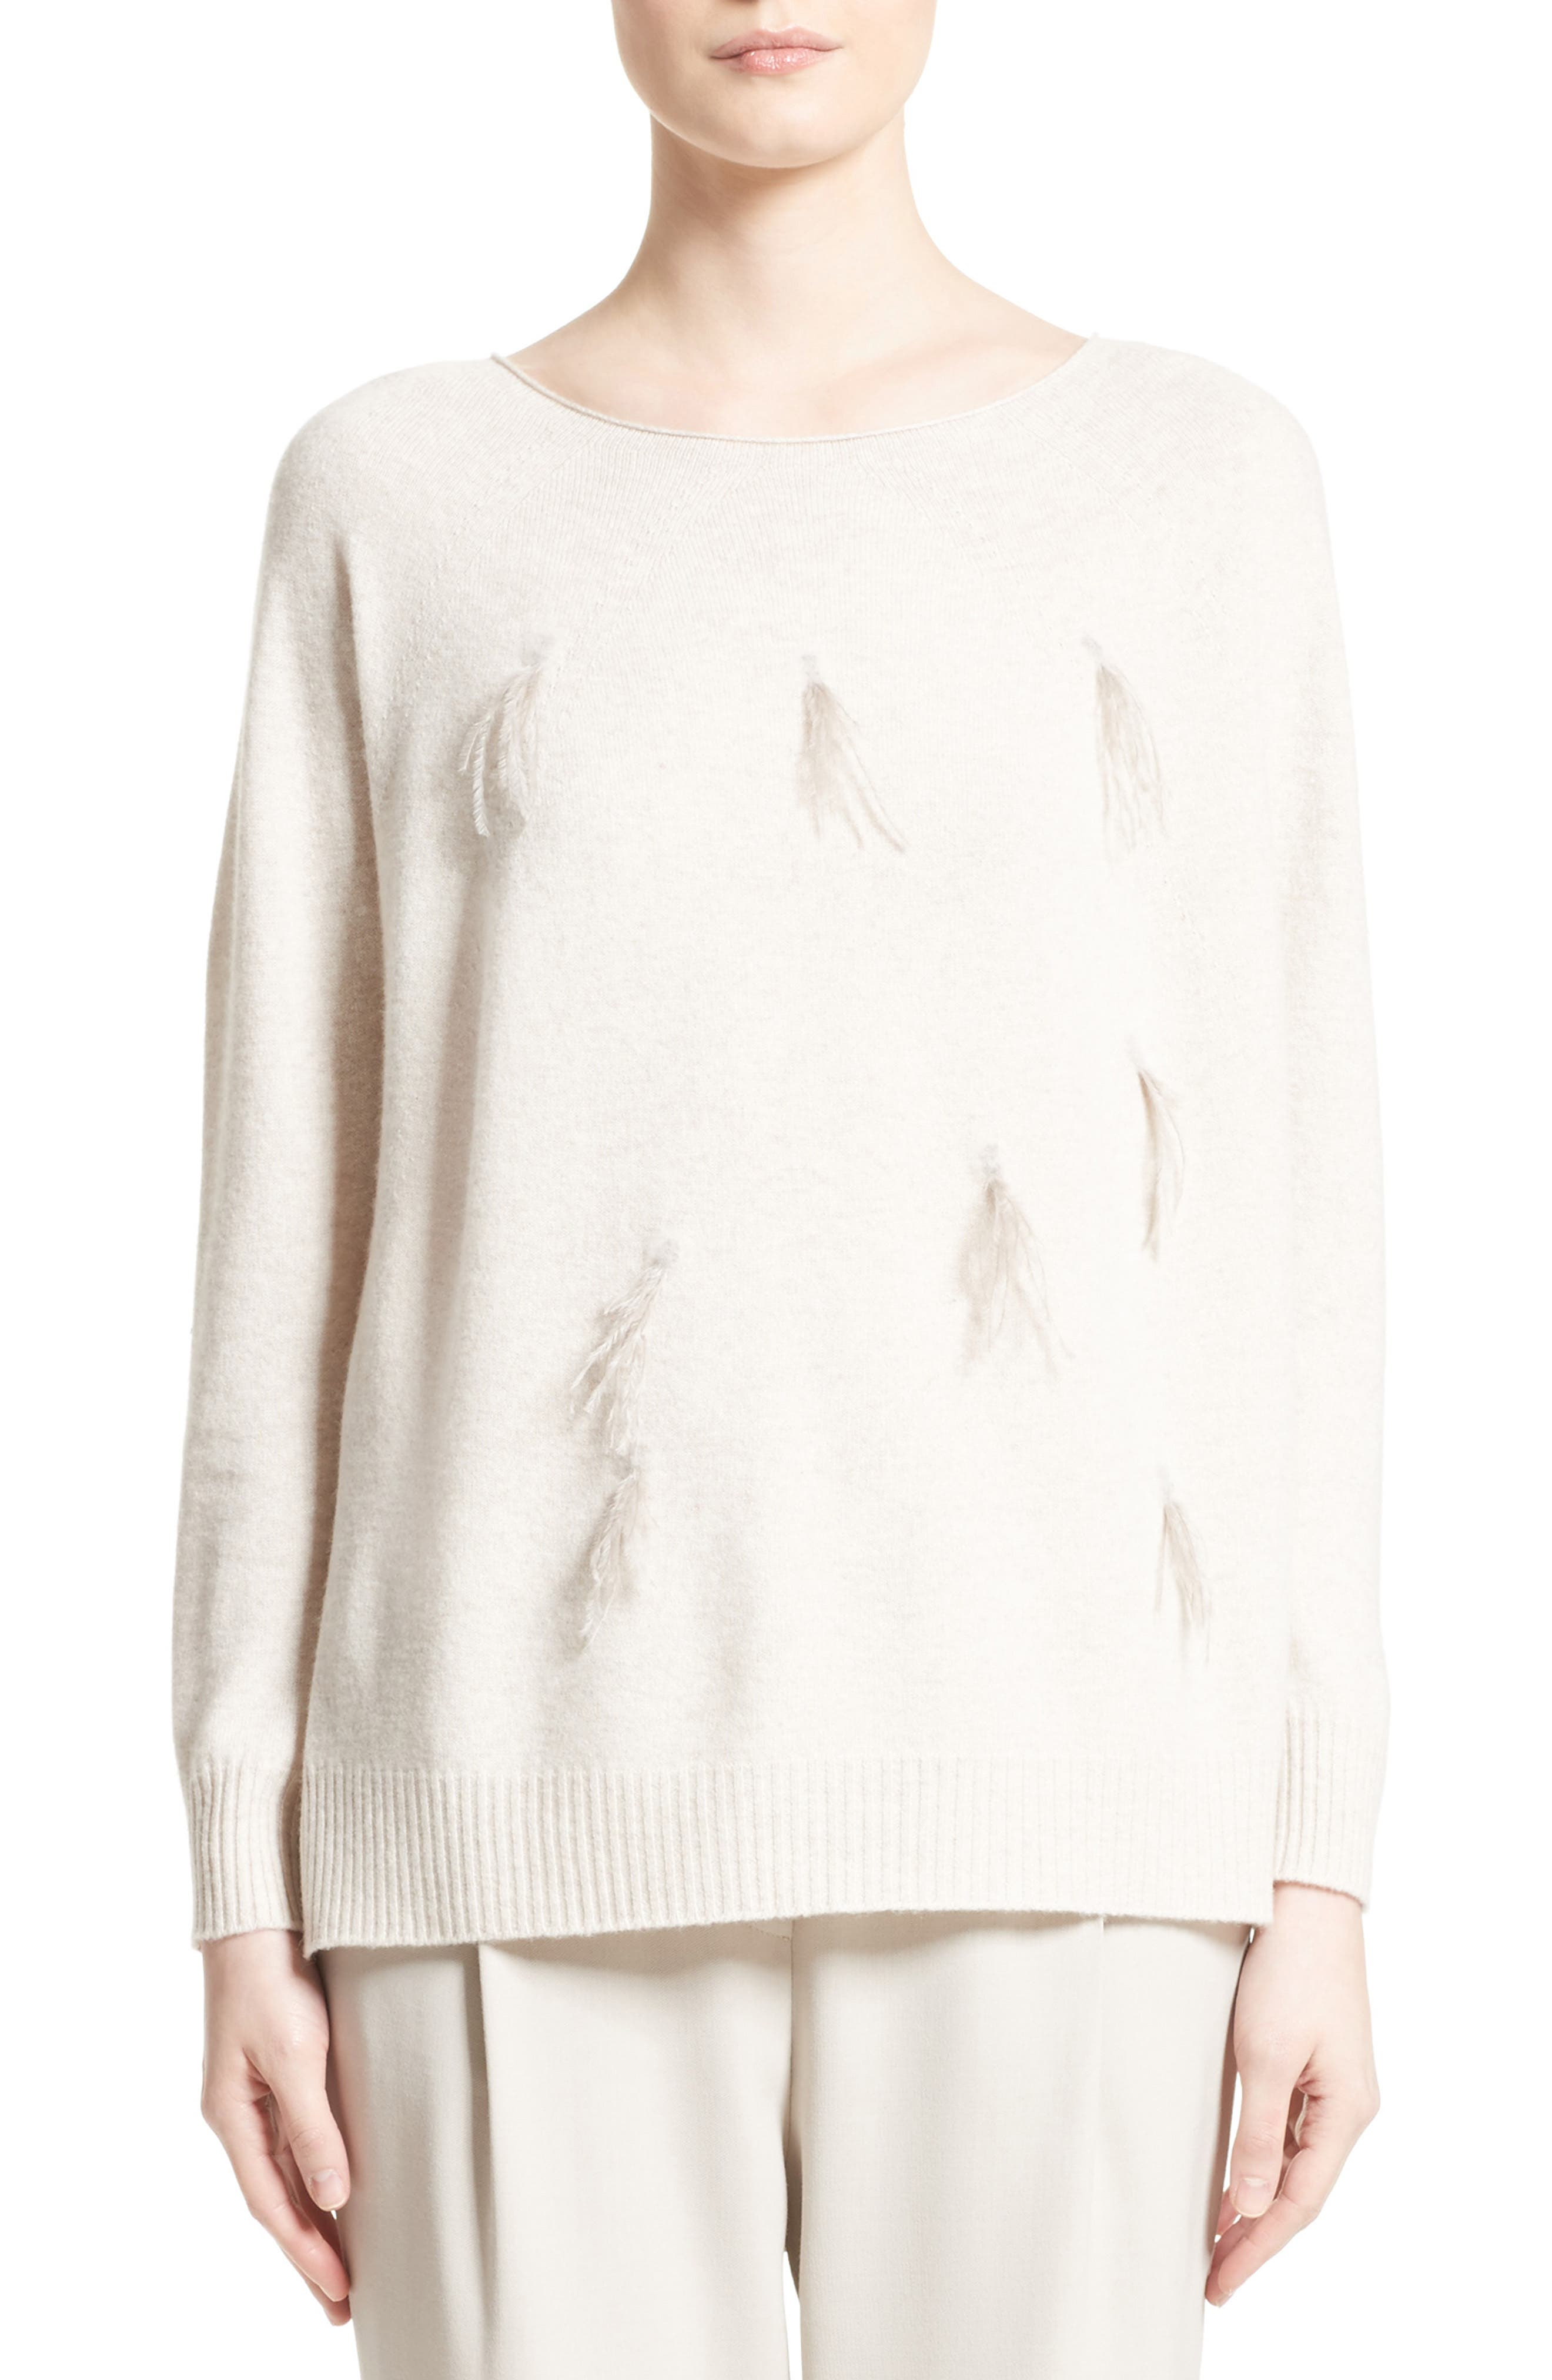 Fabiana Filippi Needle Punch Ostrich Feather Trim Sweater